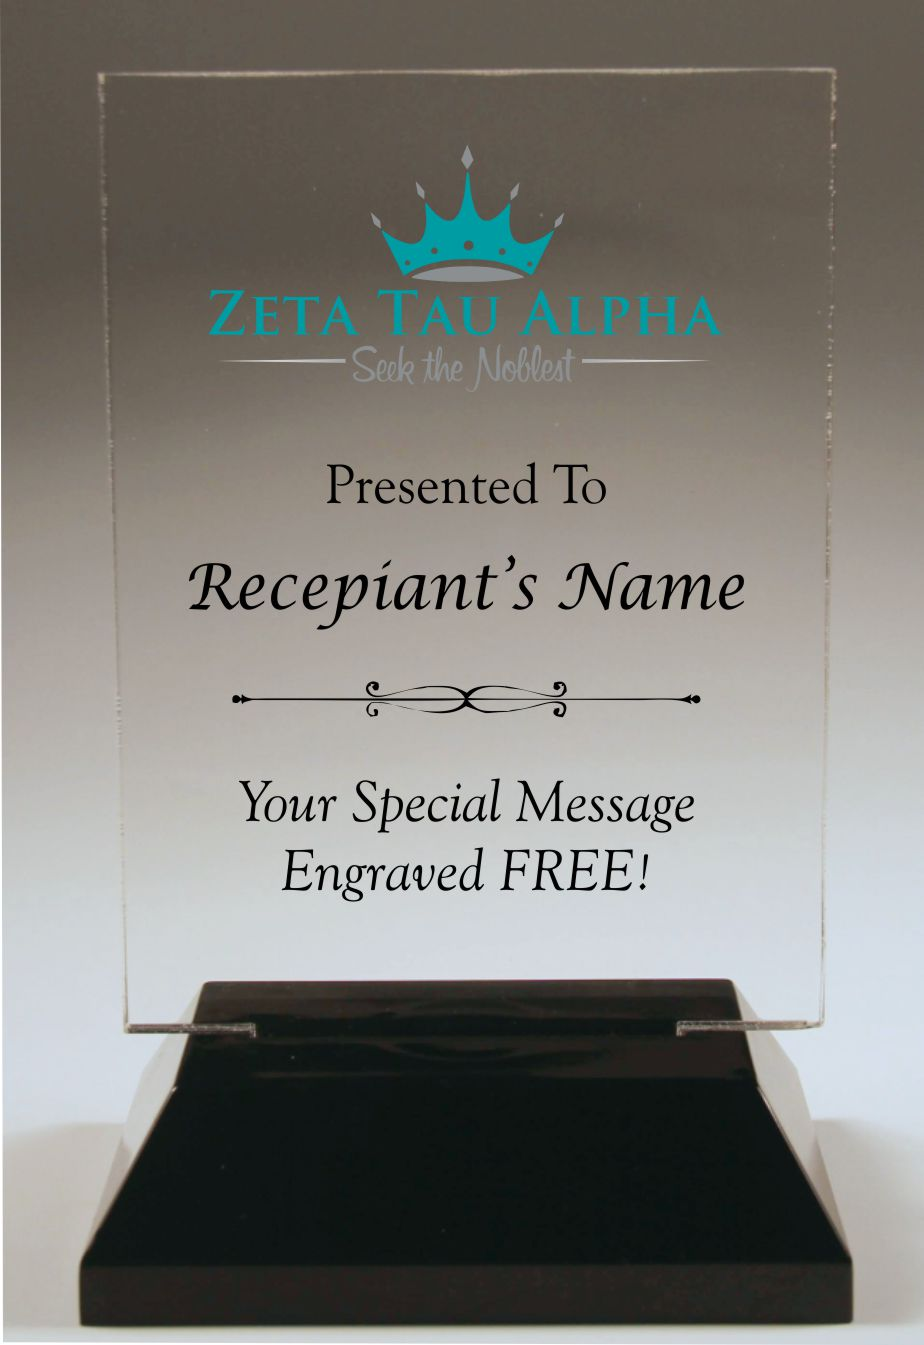 Zeta Tau Alpha Awards